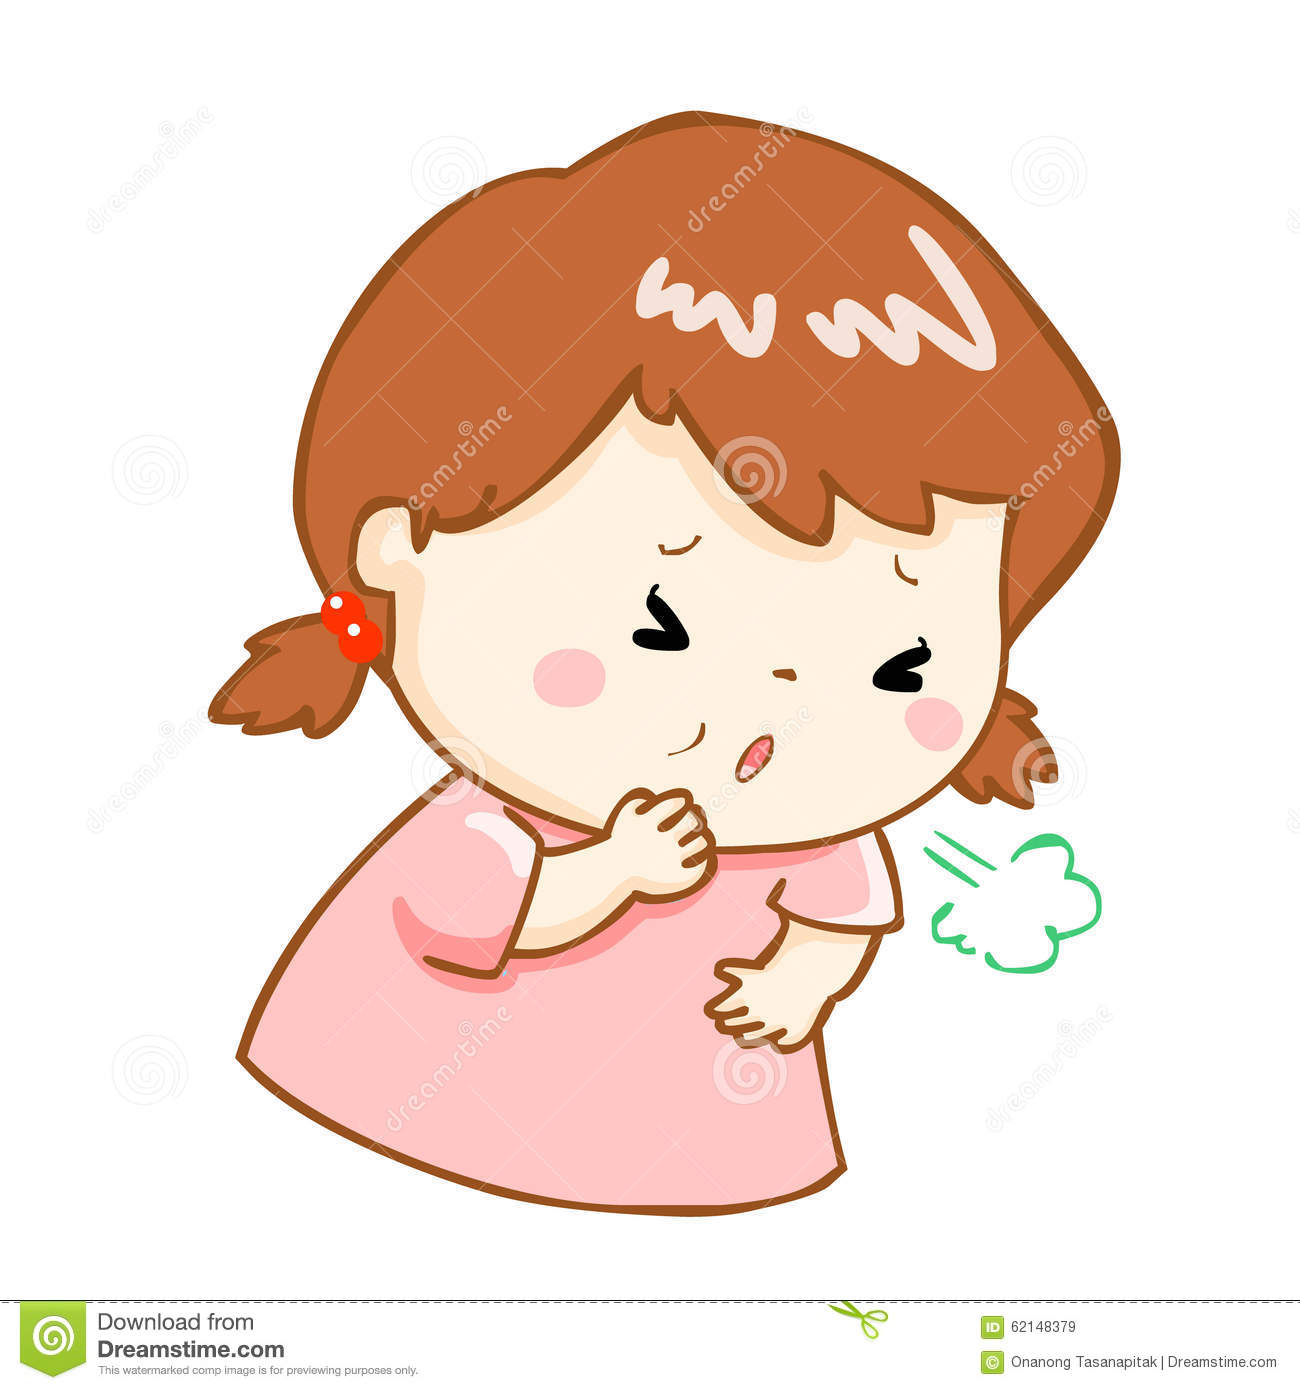 Coughing Girl Cartoon Illustration Stock Vector - Image: 62148379